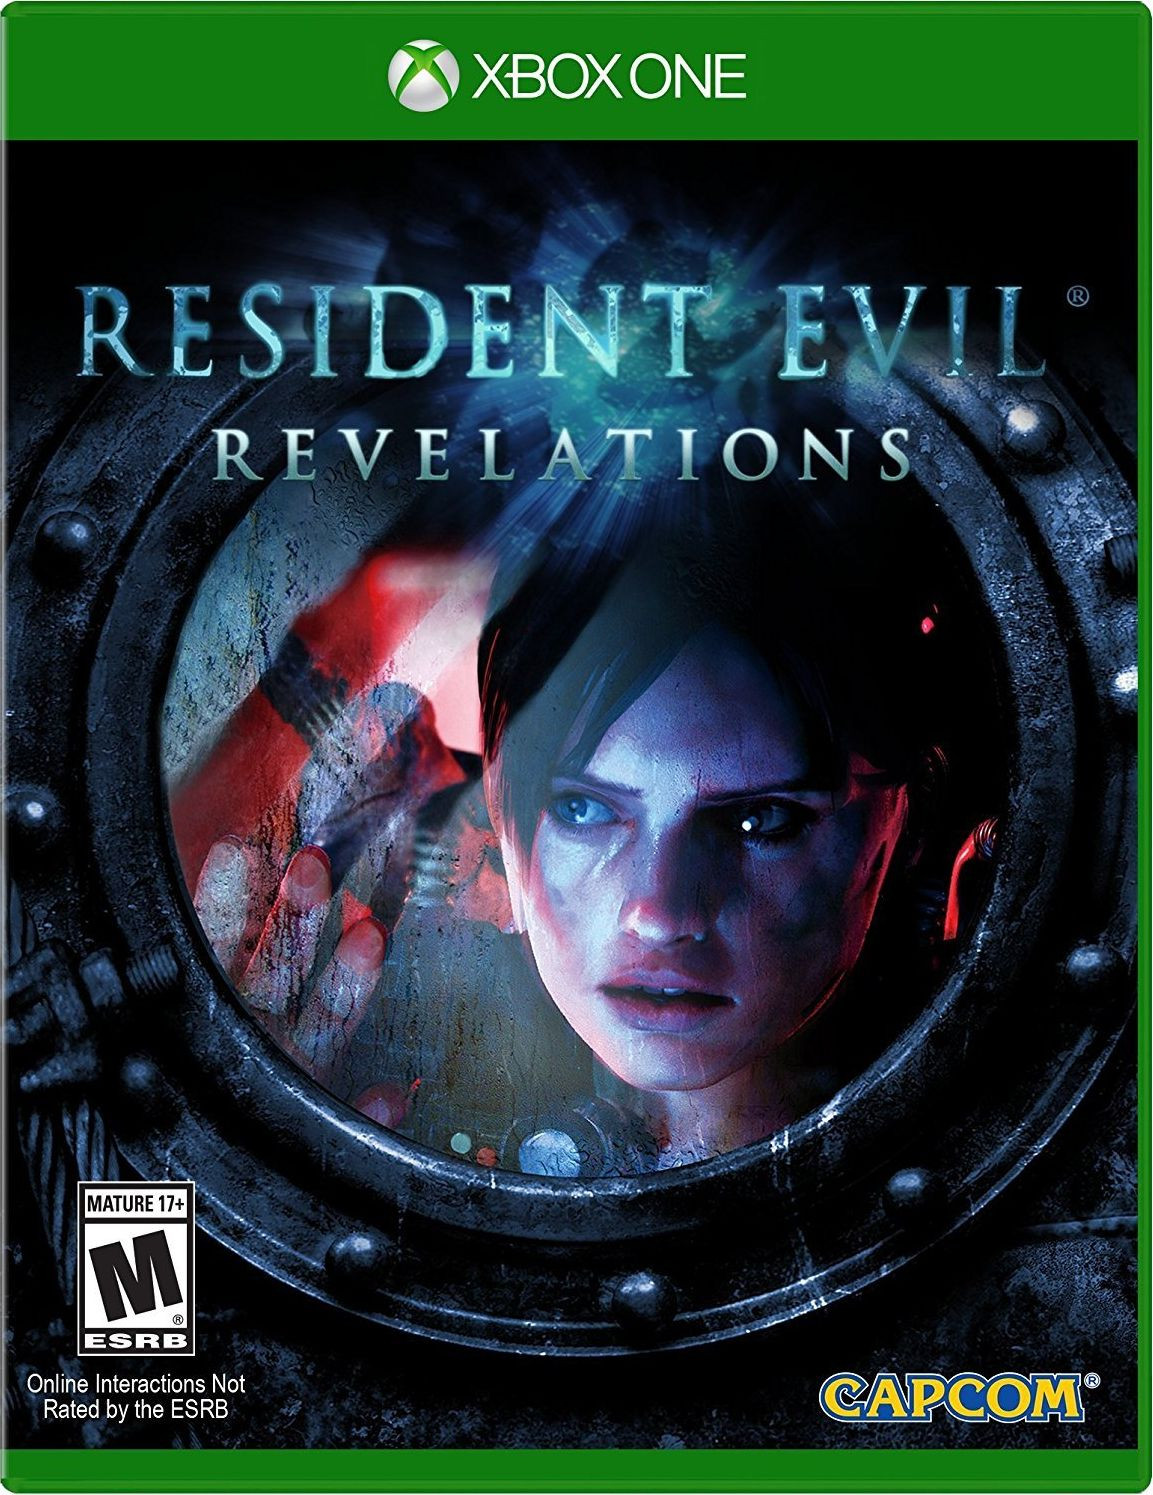 XBOX ONE Resident Evil - Revelations HD